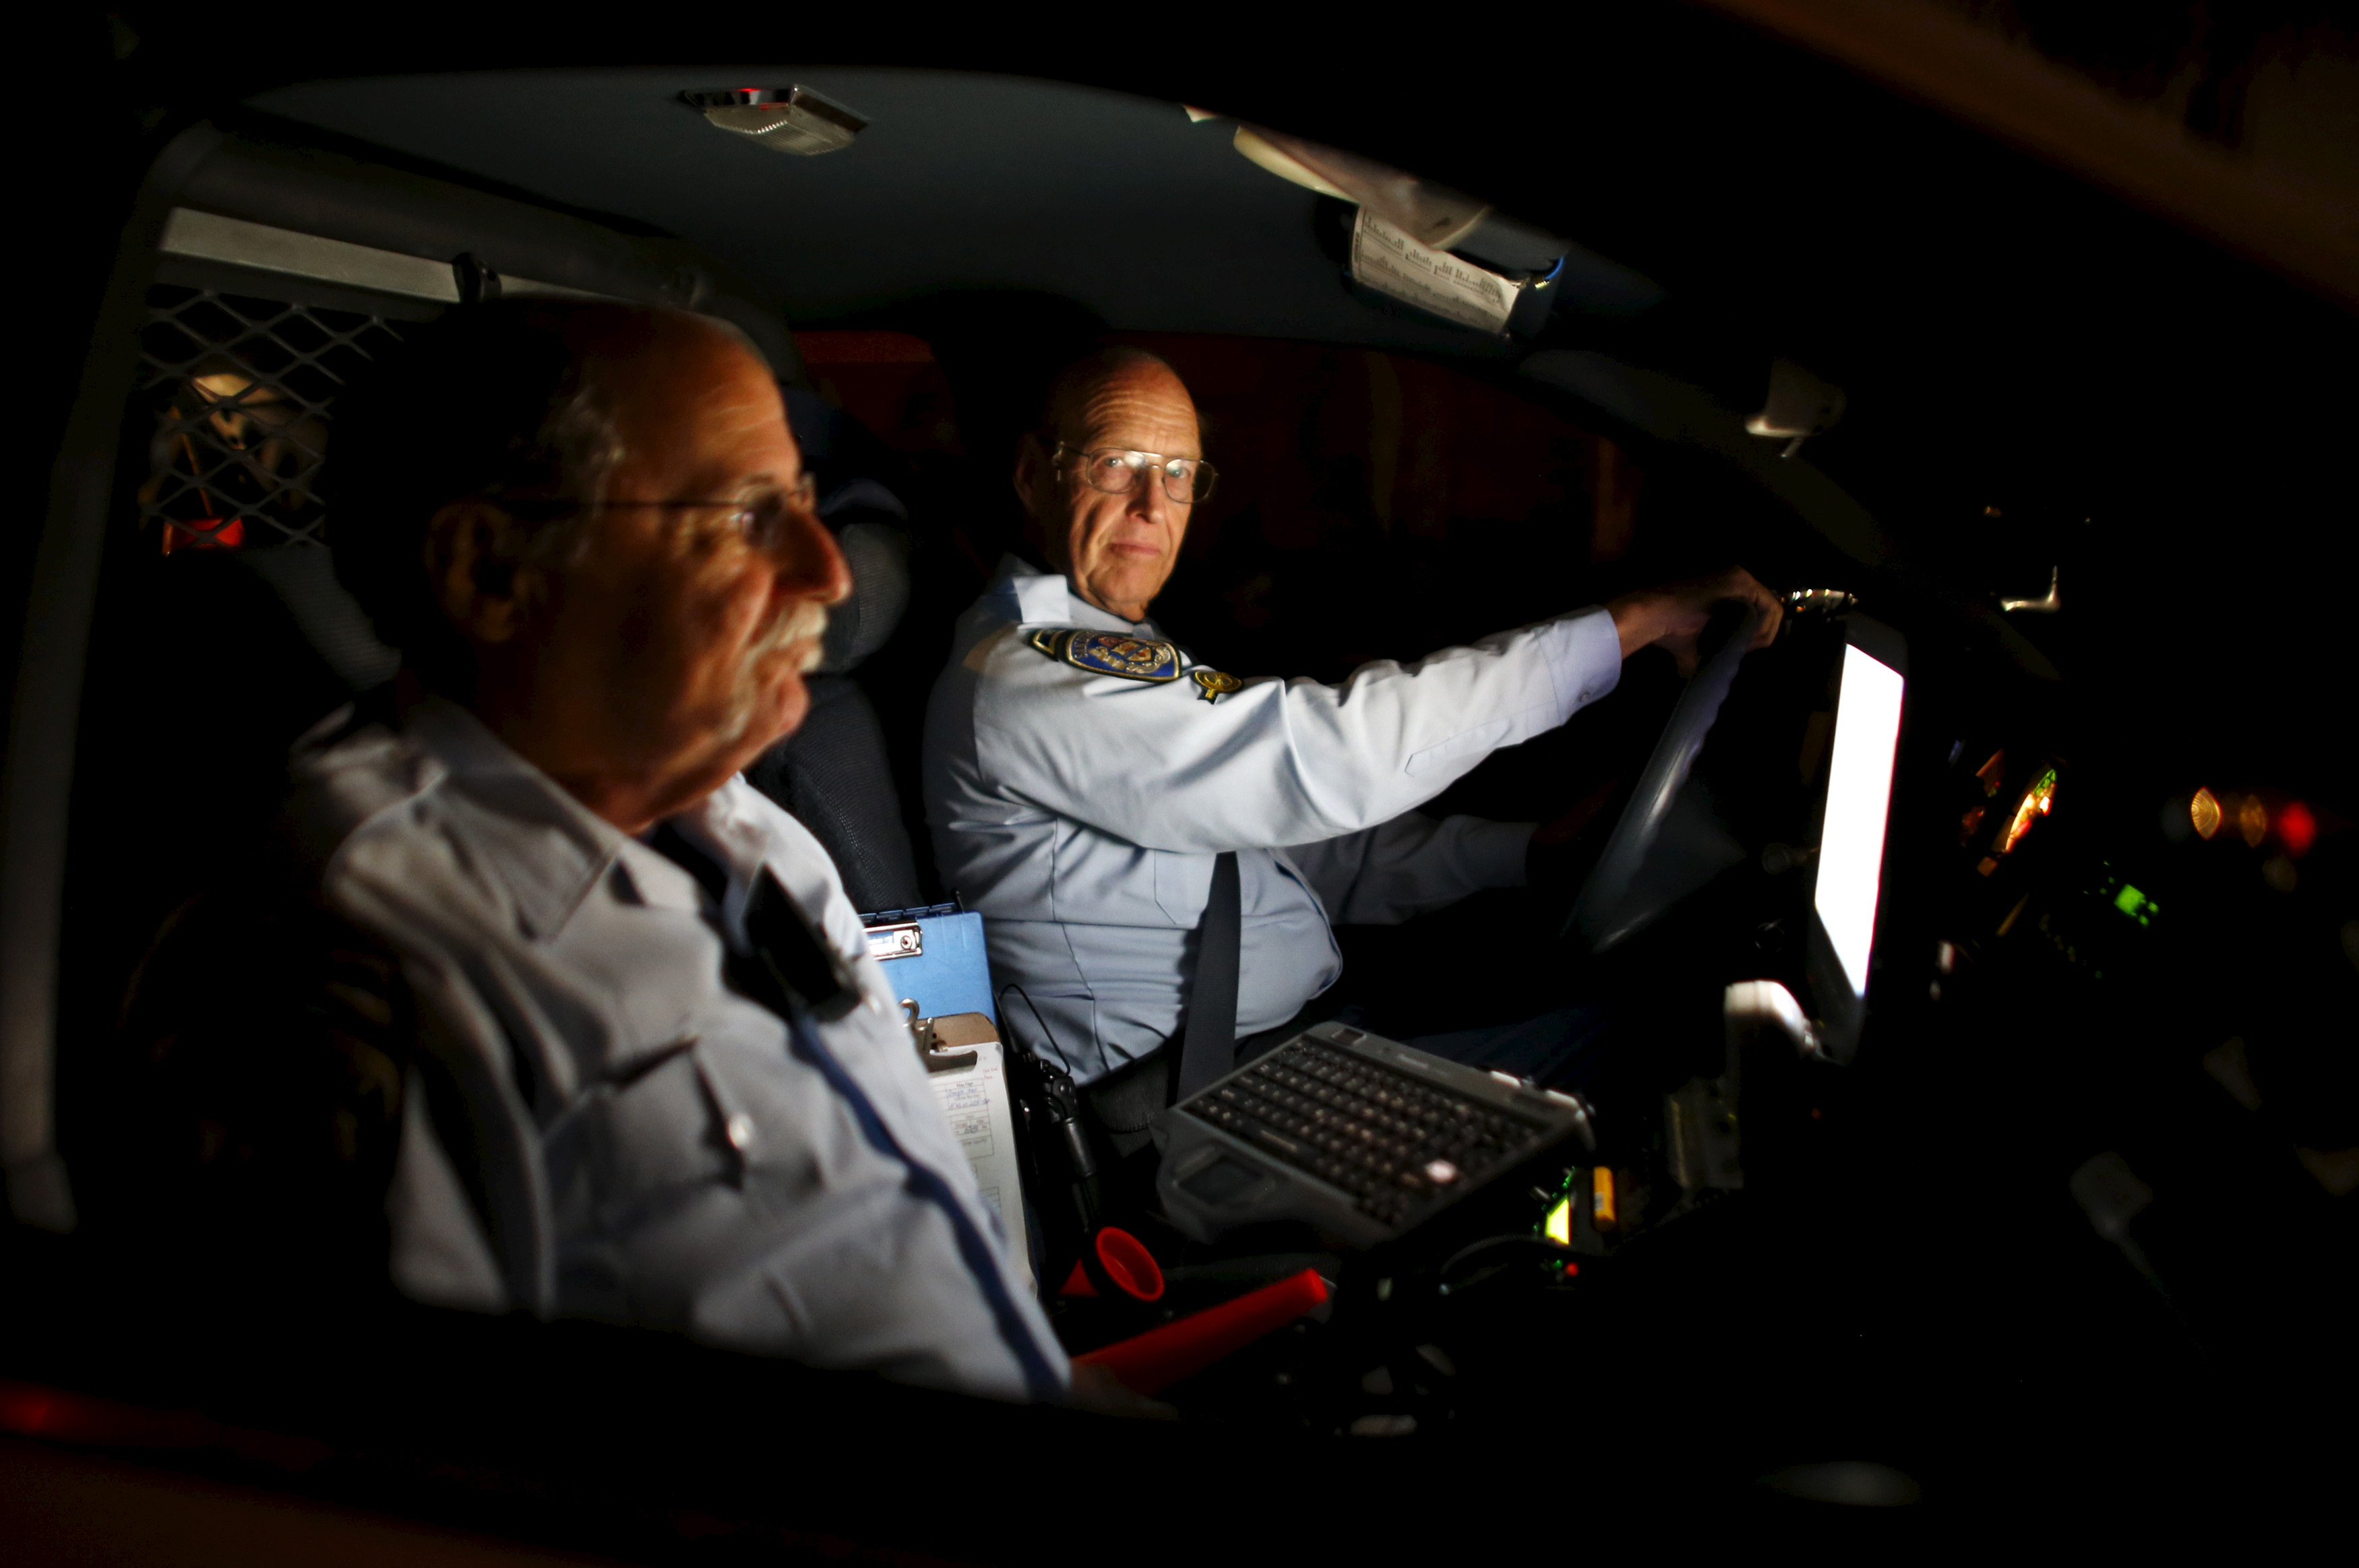 RSVP member Henry Miller drives on patrol with partner Steve Rubin (L) as they search for a vehicle involved in a hit and run accident in San Diego, California on March 10, 2015. Photo by Mike Blake/Reuters